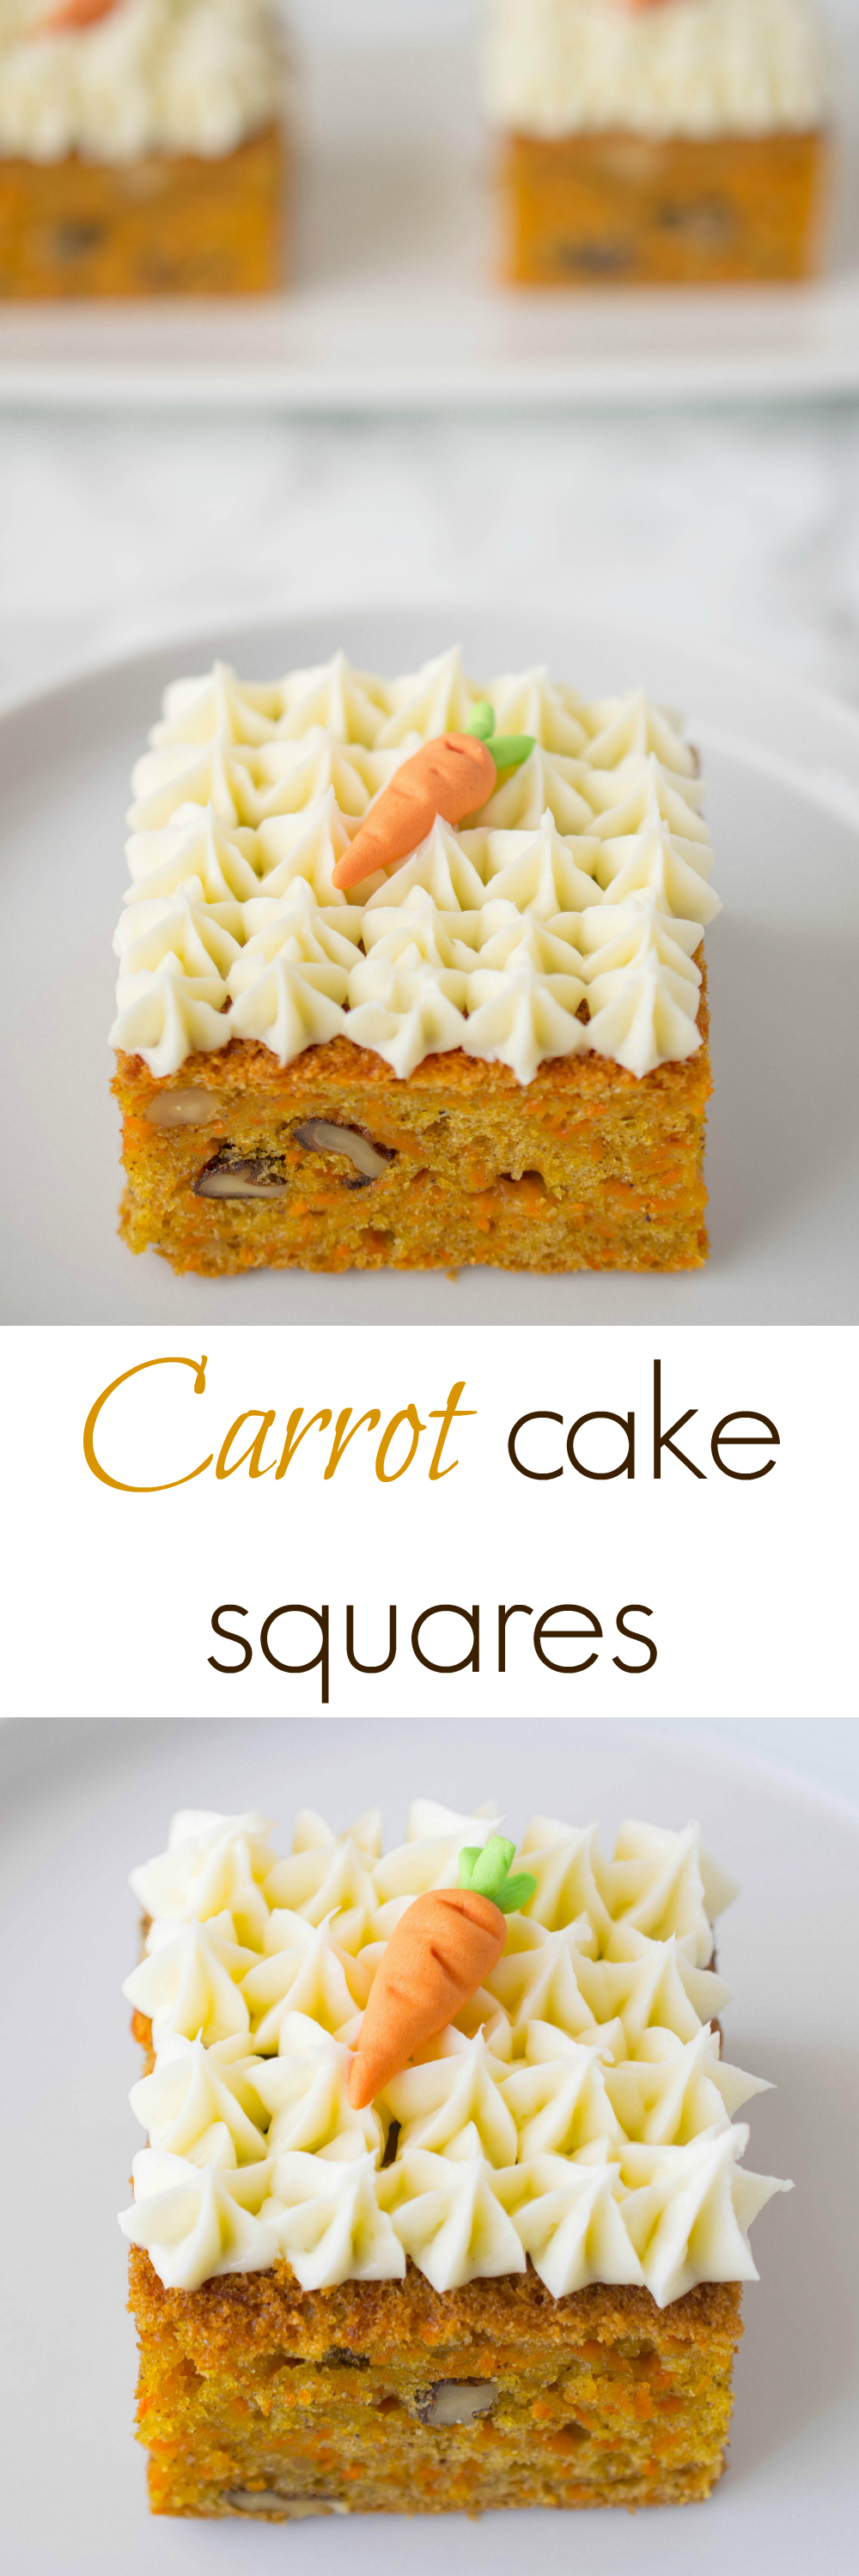 Easy and moist carrot cake made sheet cake style and cut into squares. These carrot cake squares are perfect individual sizes with added walnuts and adorned with decoratively piped cream cheese frosting.